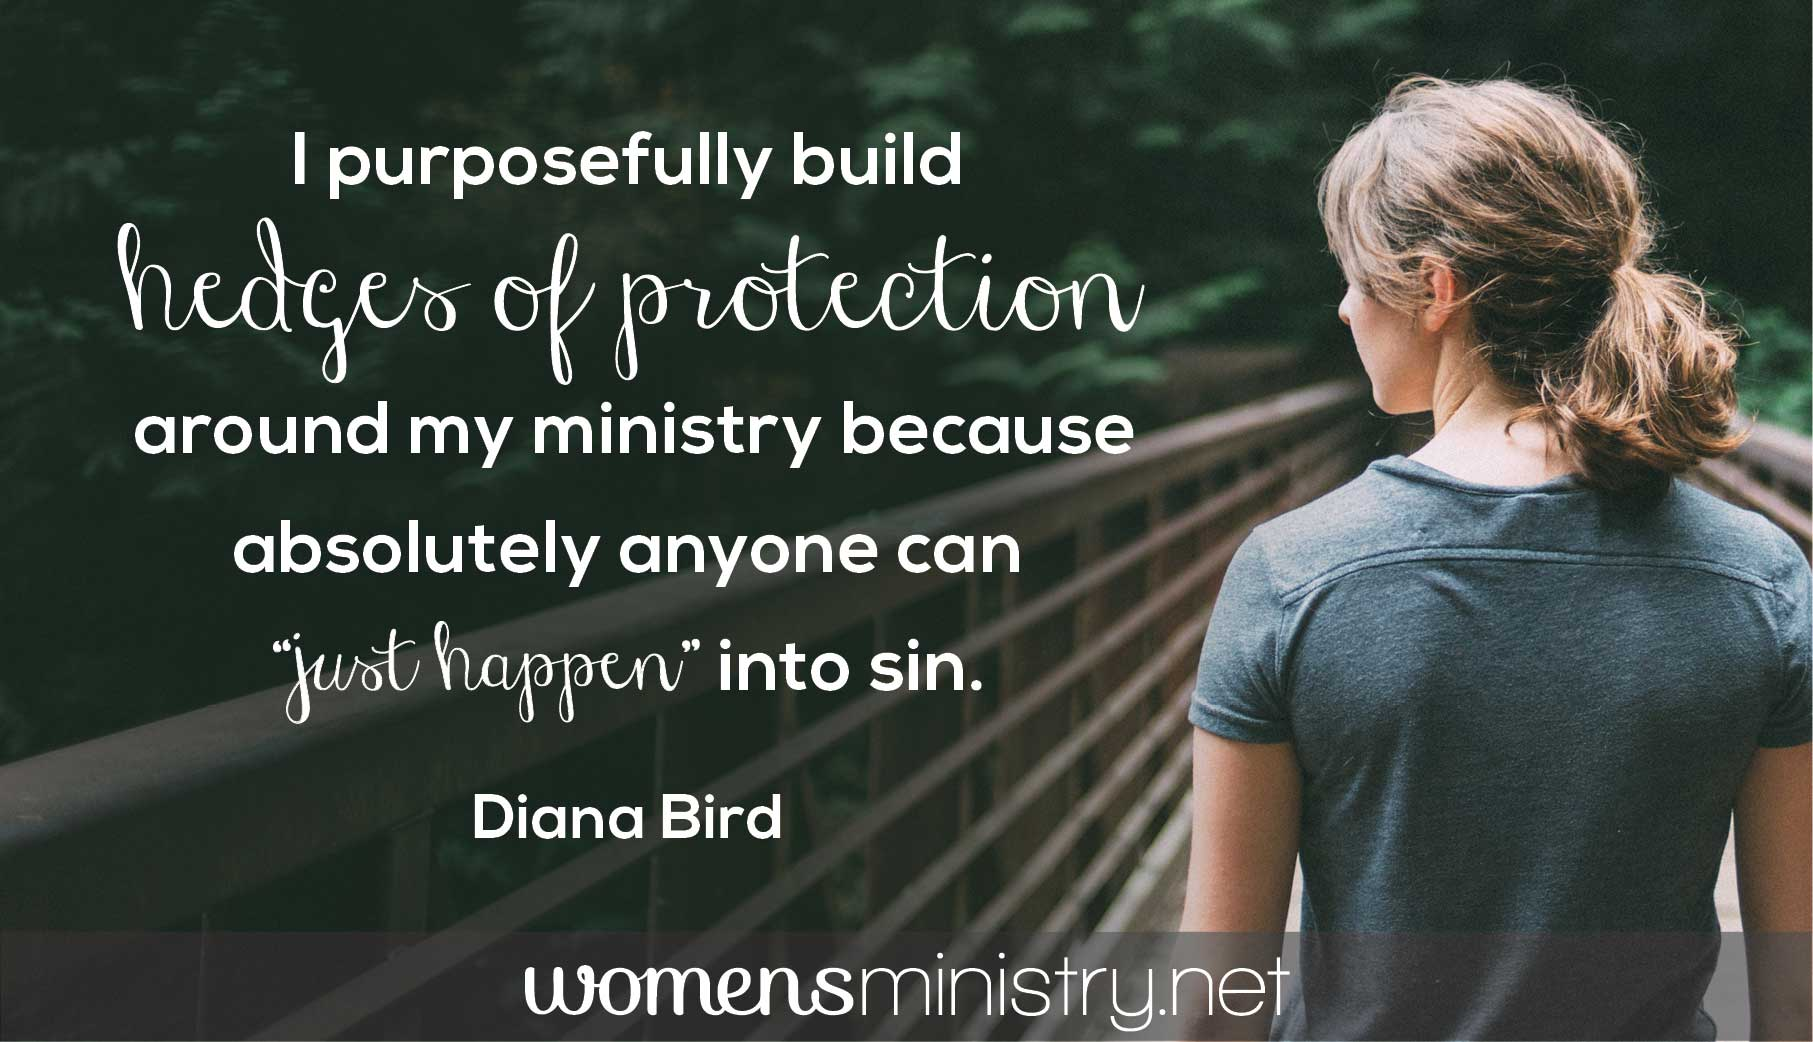 diana bird quote image